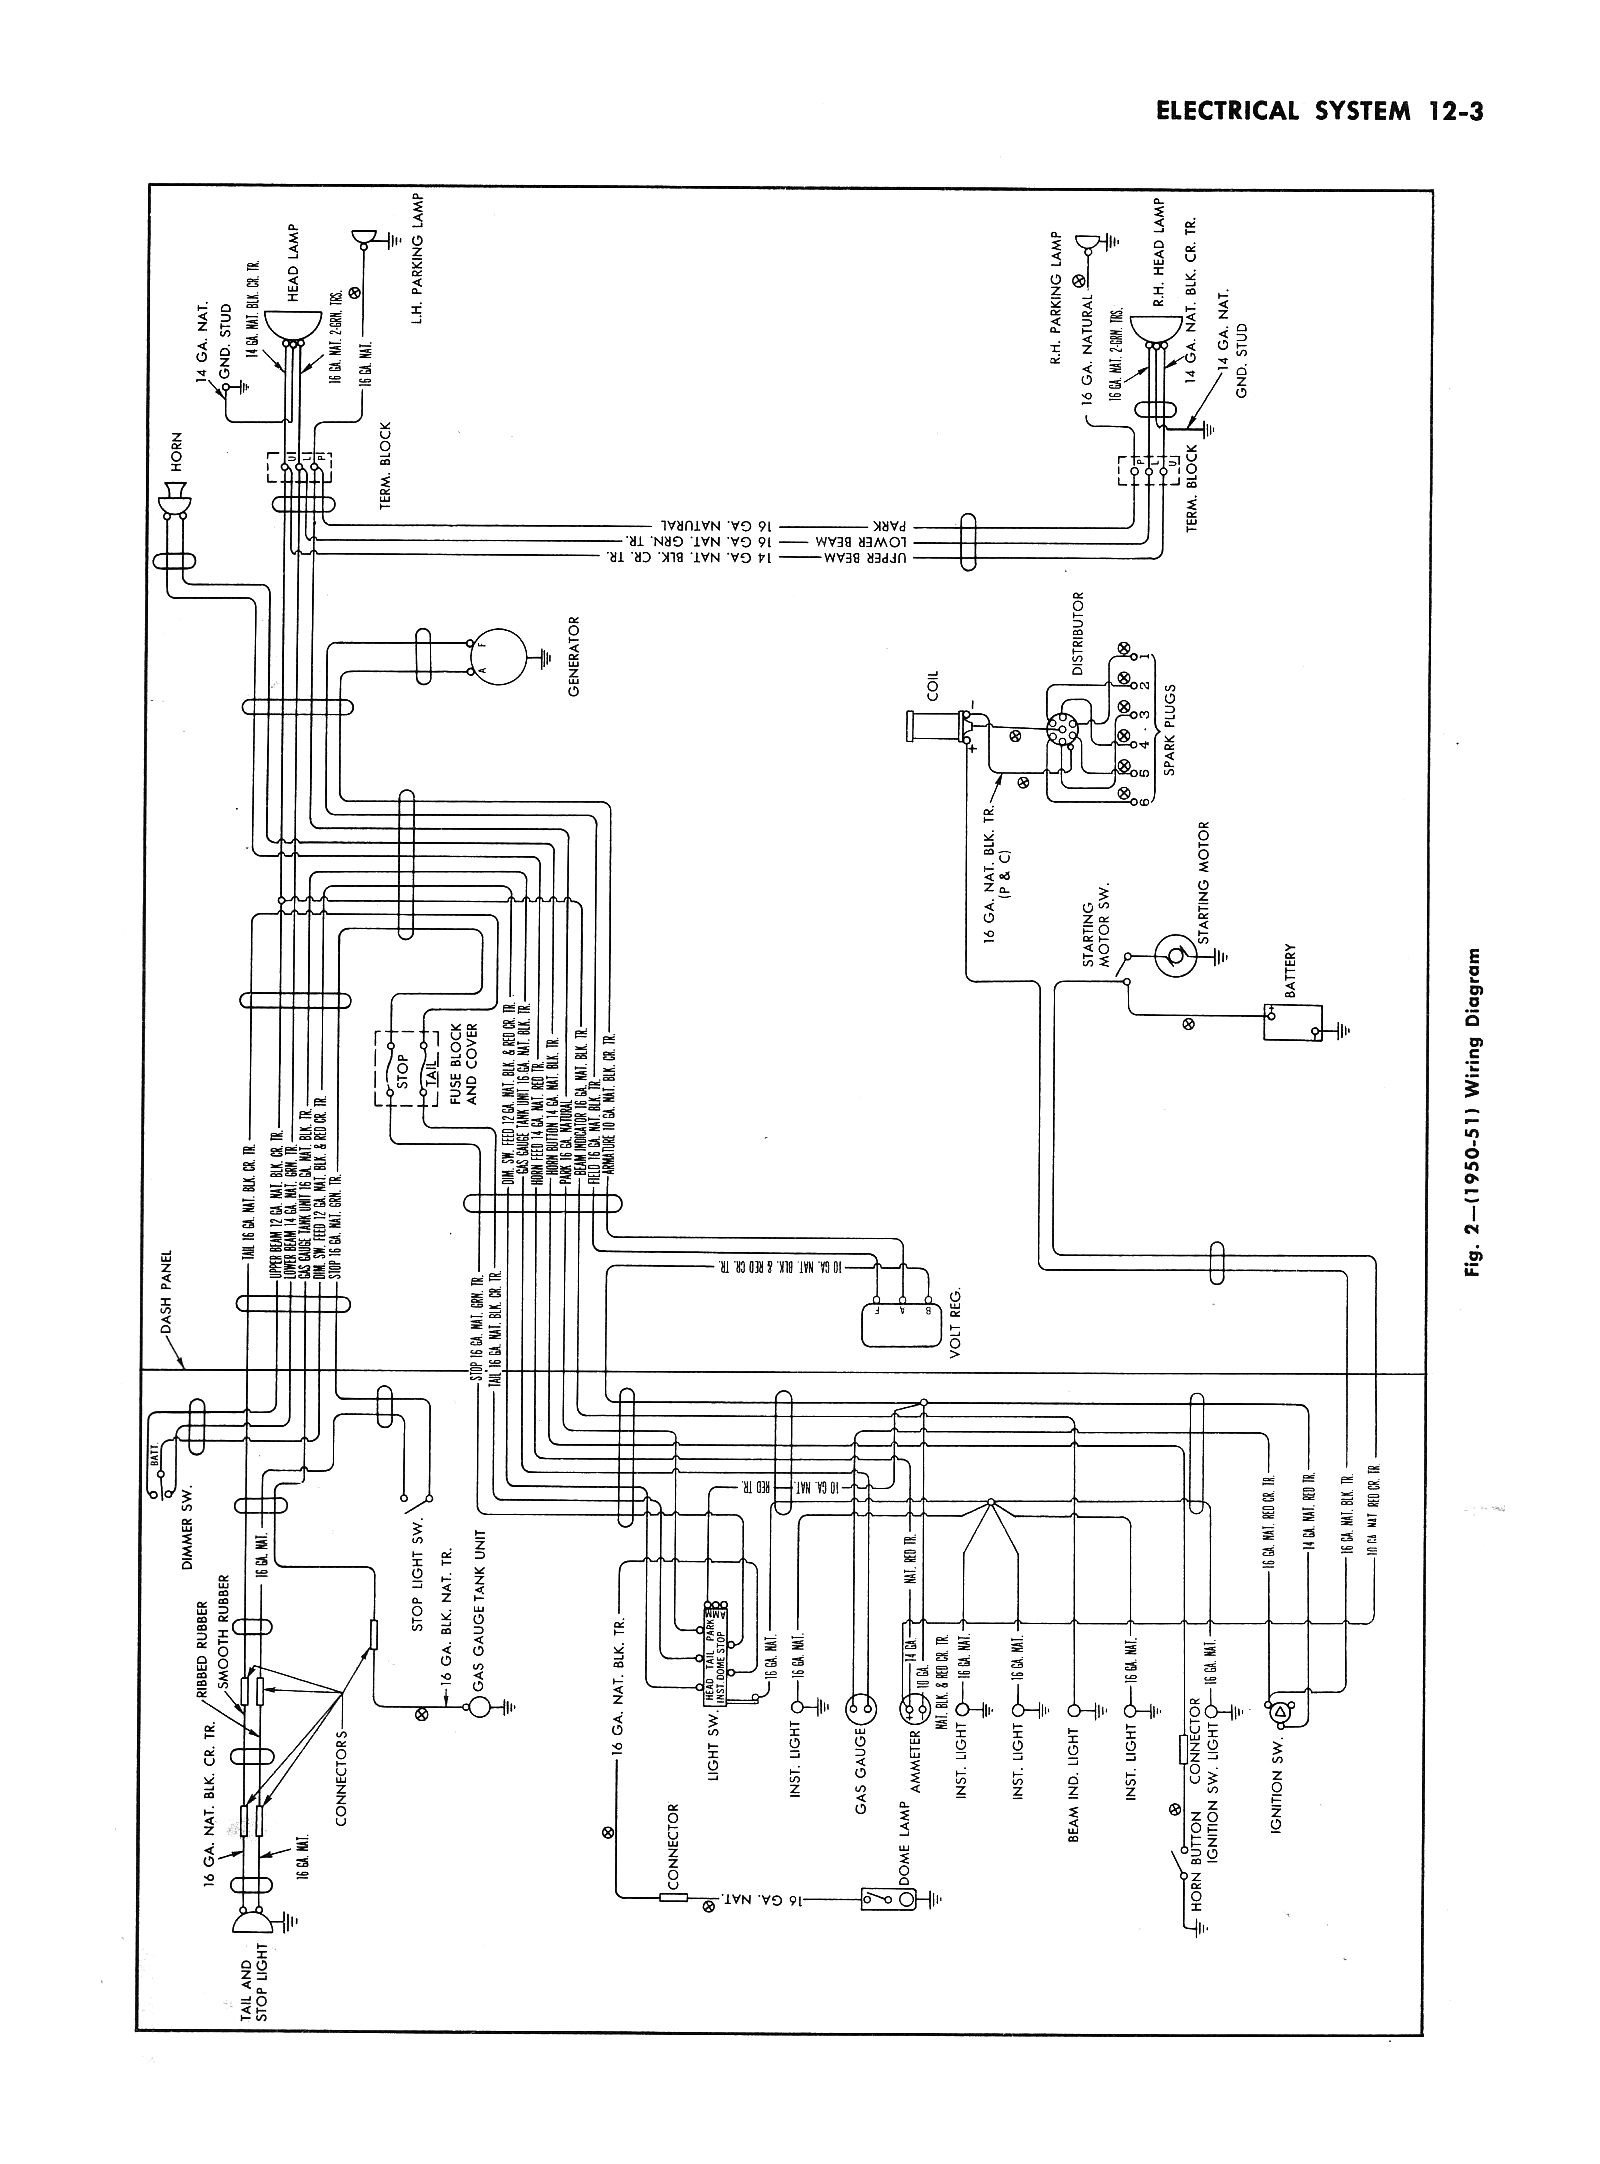 1952 chevy wiring diagram wiring diagram rh blaknwyt co Chevy 3200 Chevy 3600